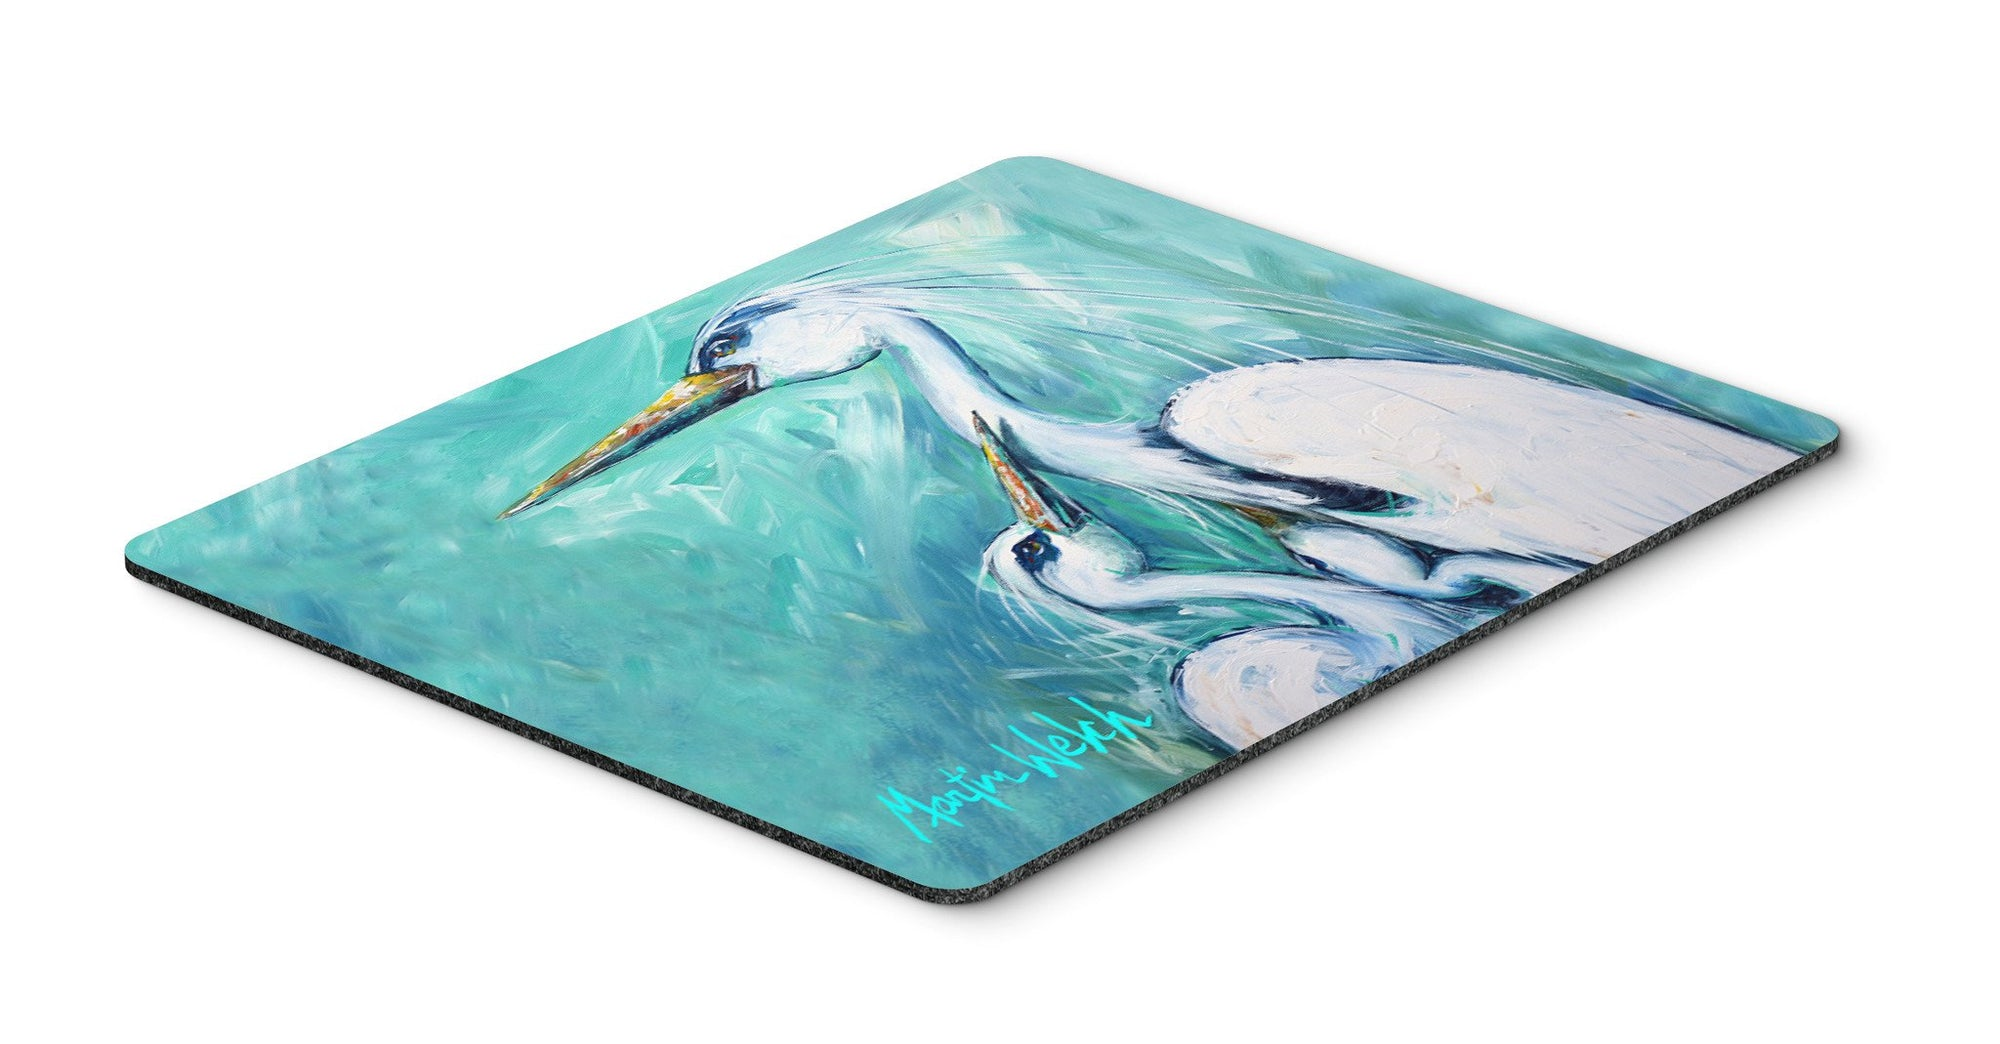 Mother's Love White Crane Mouse Pad, Hot Pad or Trivet MW1159MP by Caroline's Treasures